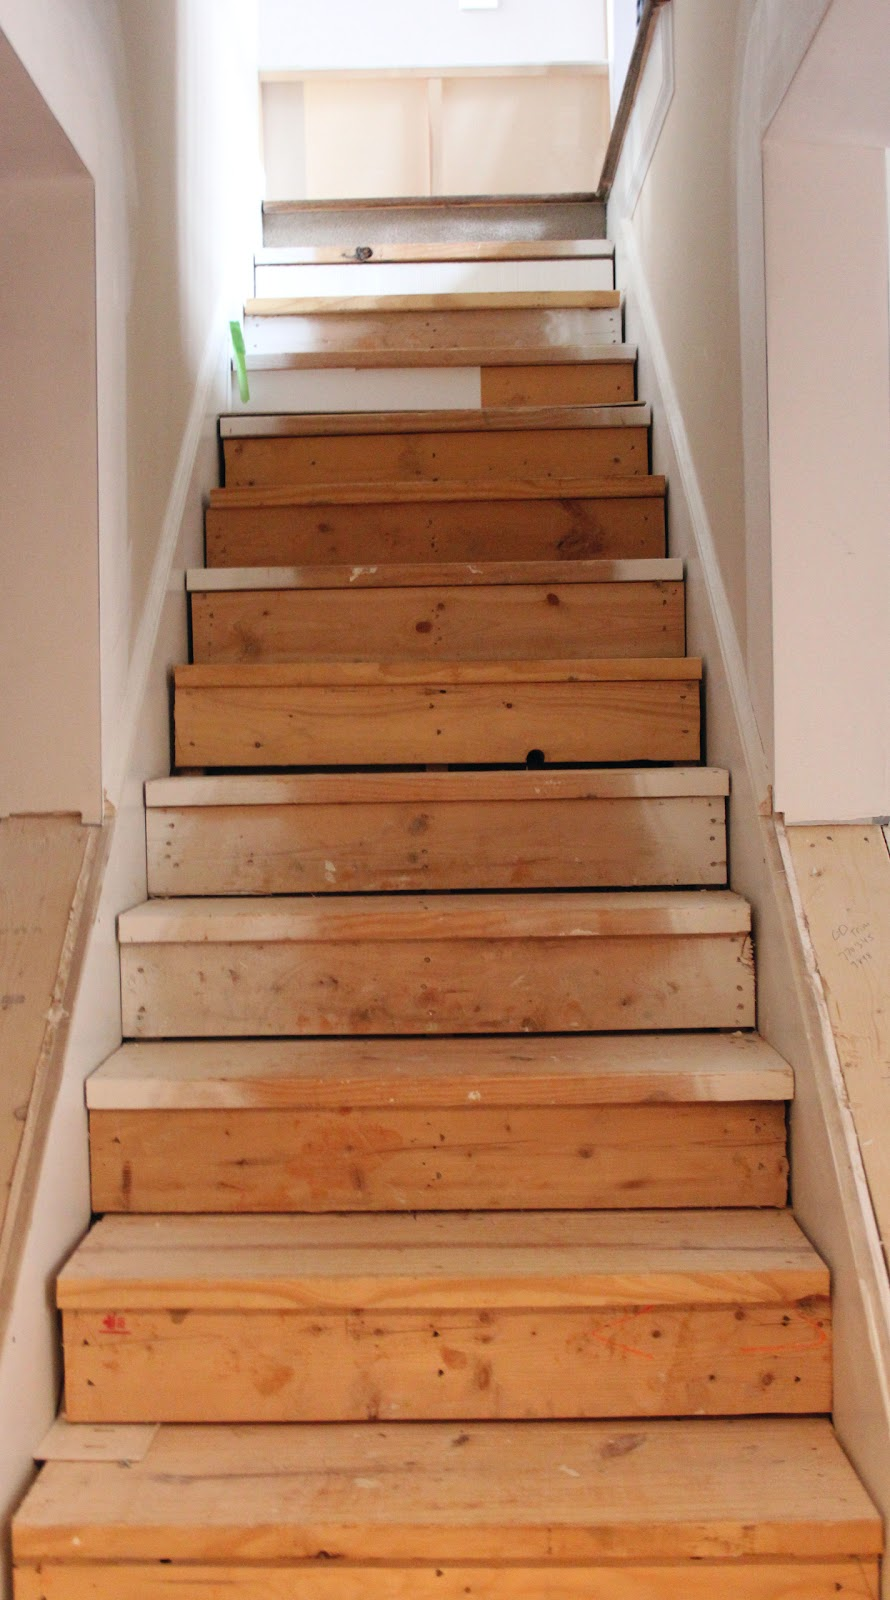 Basement Stair Trim: My EnRoute Life: Ugly Basement Stairs Update